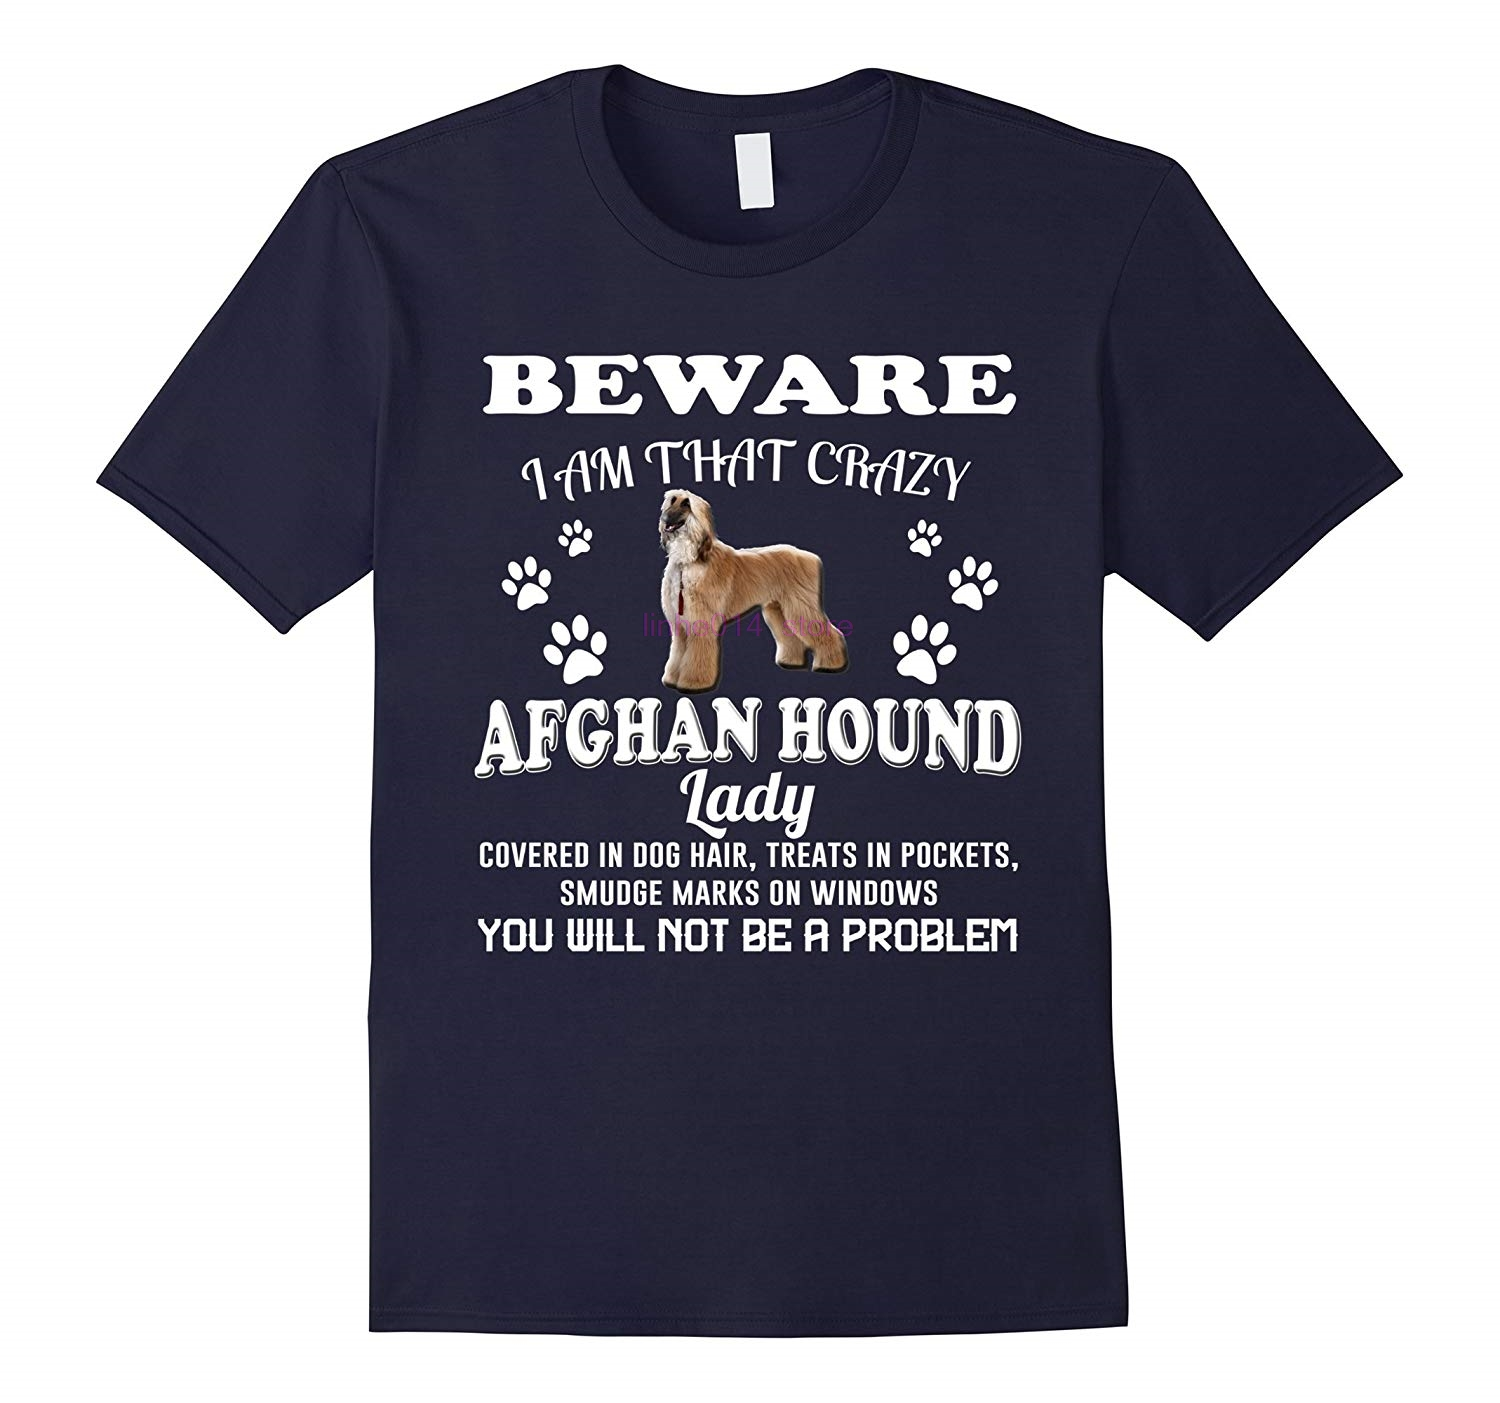 GILDAN brand men shirt Afghan Hound Shirt Gifts For Mom Dad Love Dog Women T Shirt